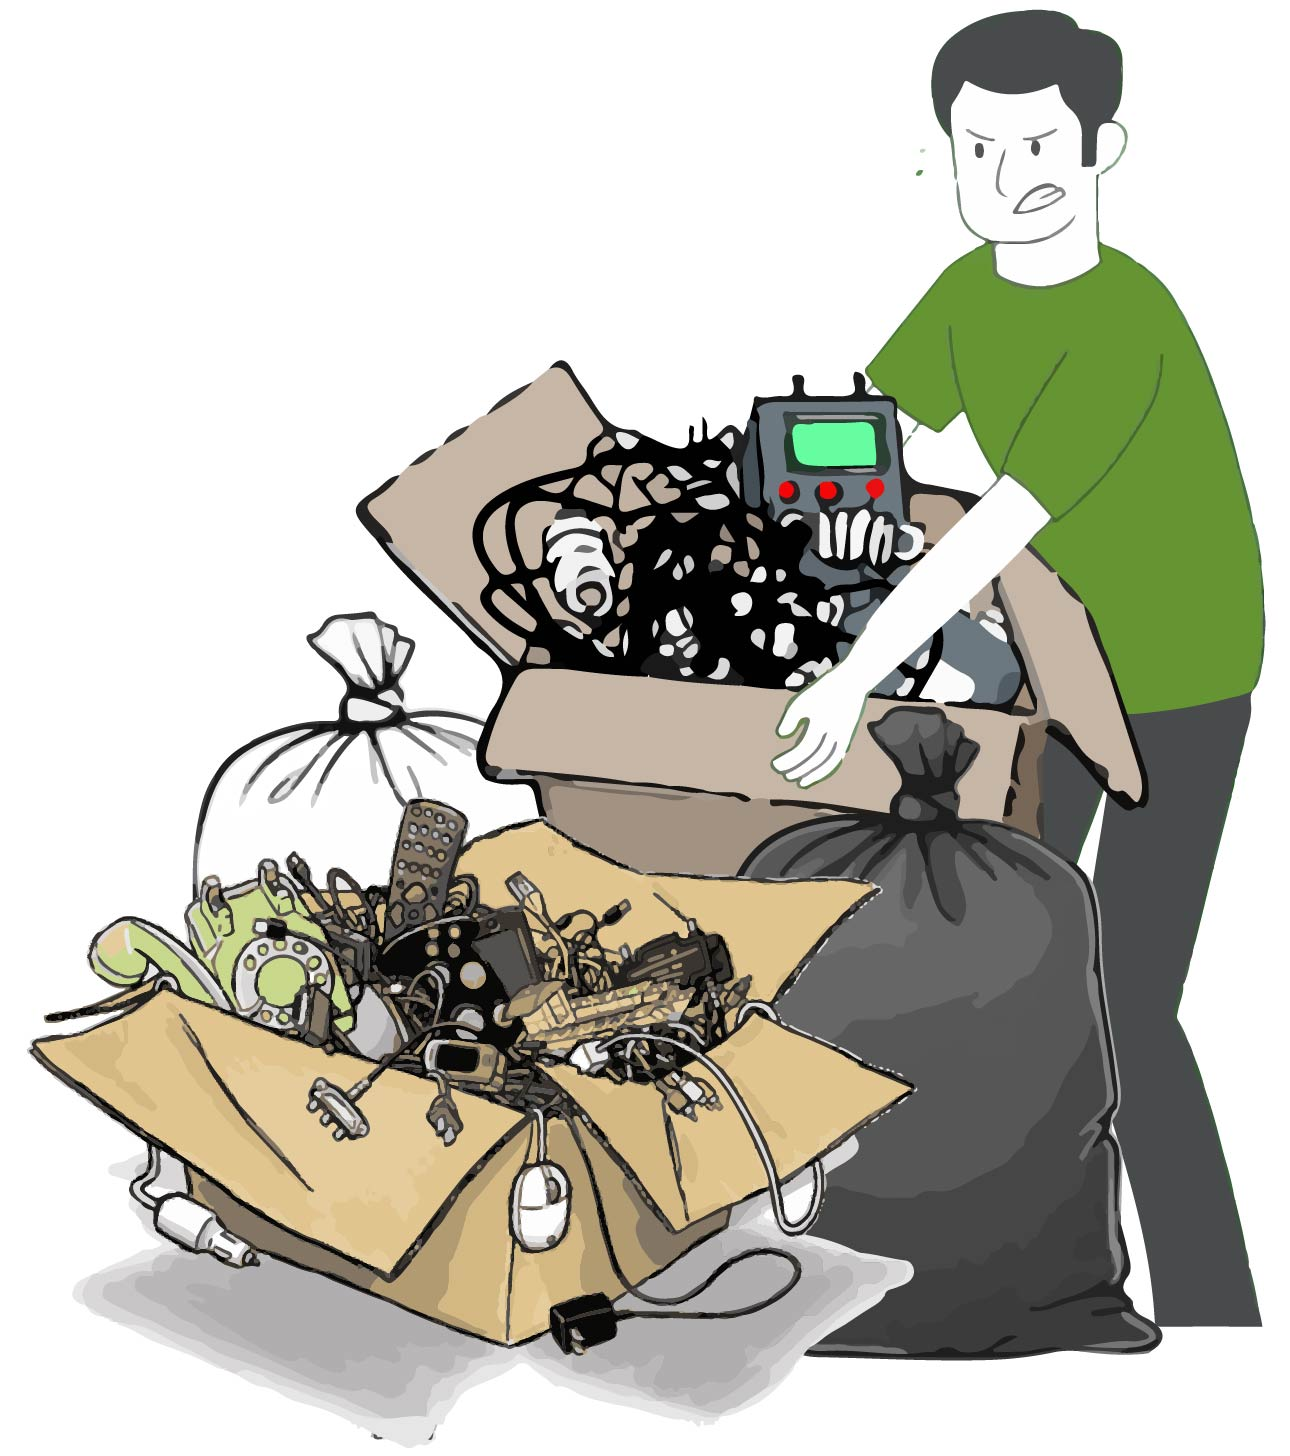 Affordable Junk Removal Services in Bellevue, NE